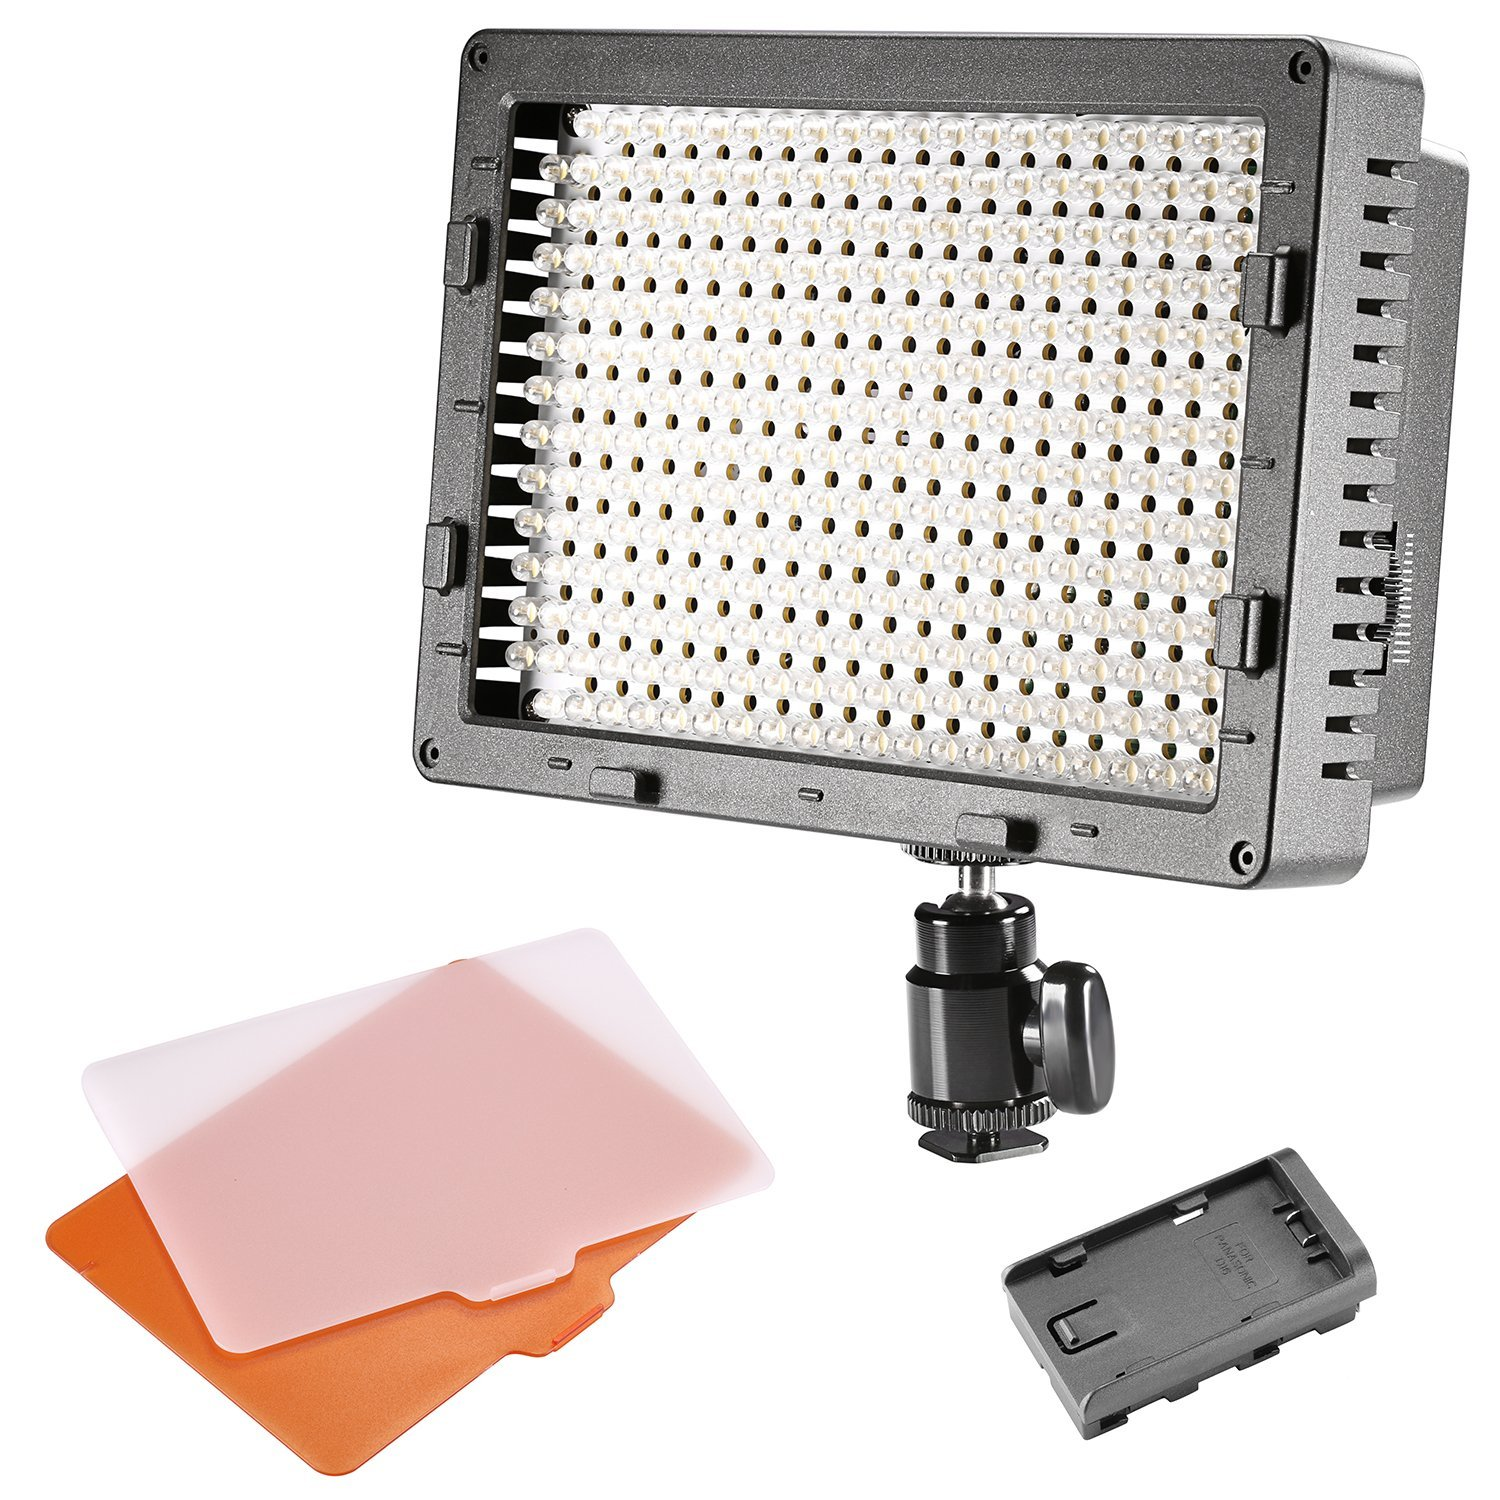 Neewer ®CN-304 Panel de LED de 304PCS Regulable para Cámara Digital/Videocámara de Alta Potencia Luz de Video, Luz de Led para Cámara Digital SLR Canon,Nikon,Pentax,Panasonic,SONY,Samsung y Olympus